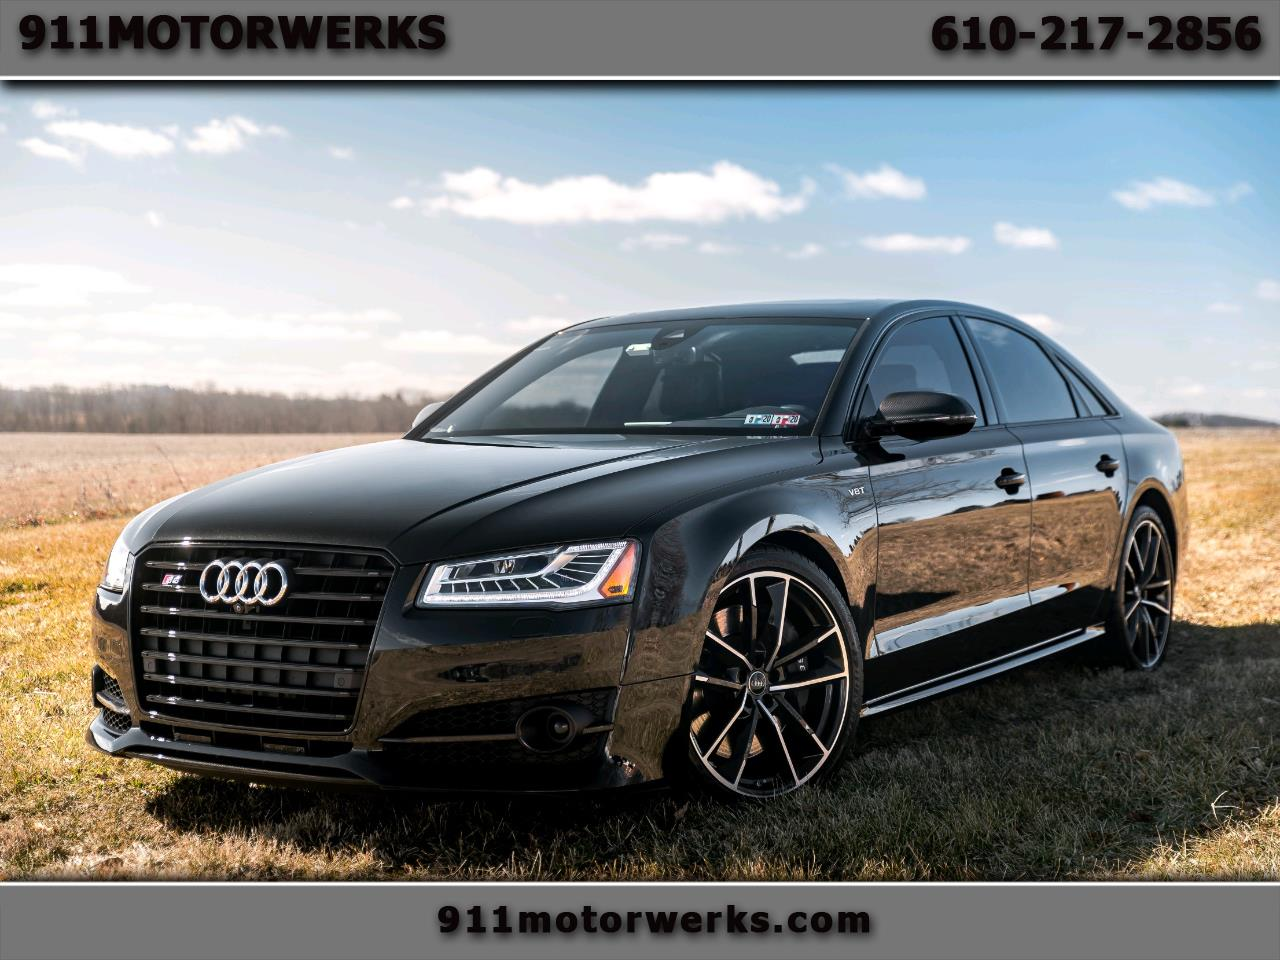 Audi S8 4.0 Sedan quattro Tiptronic 2017